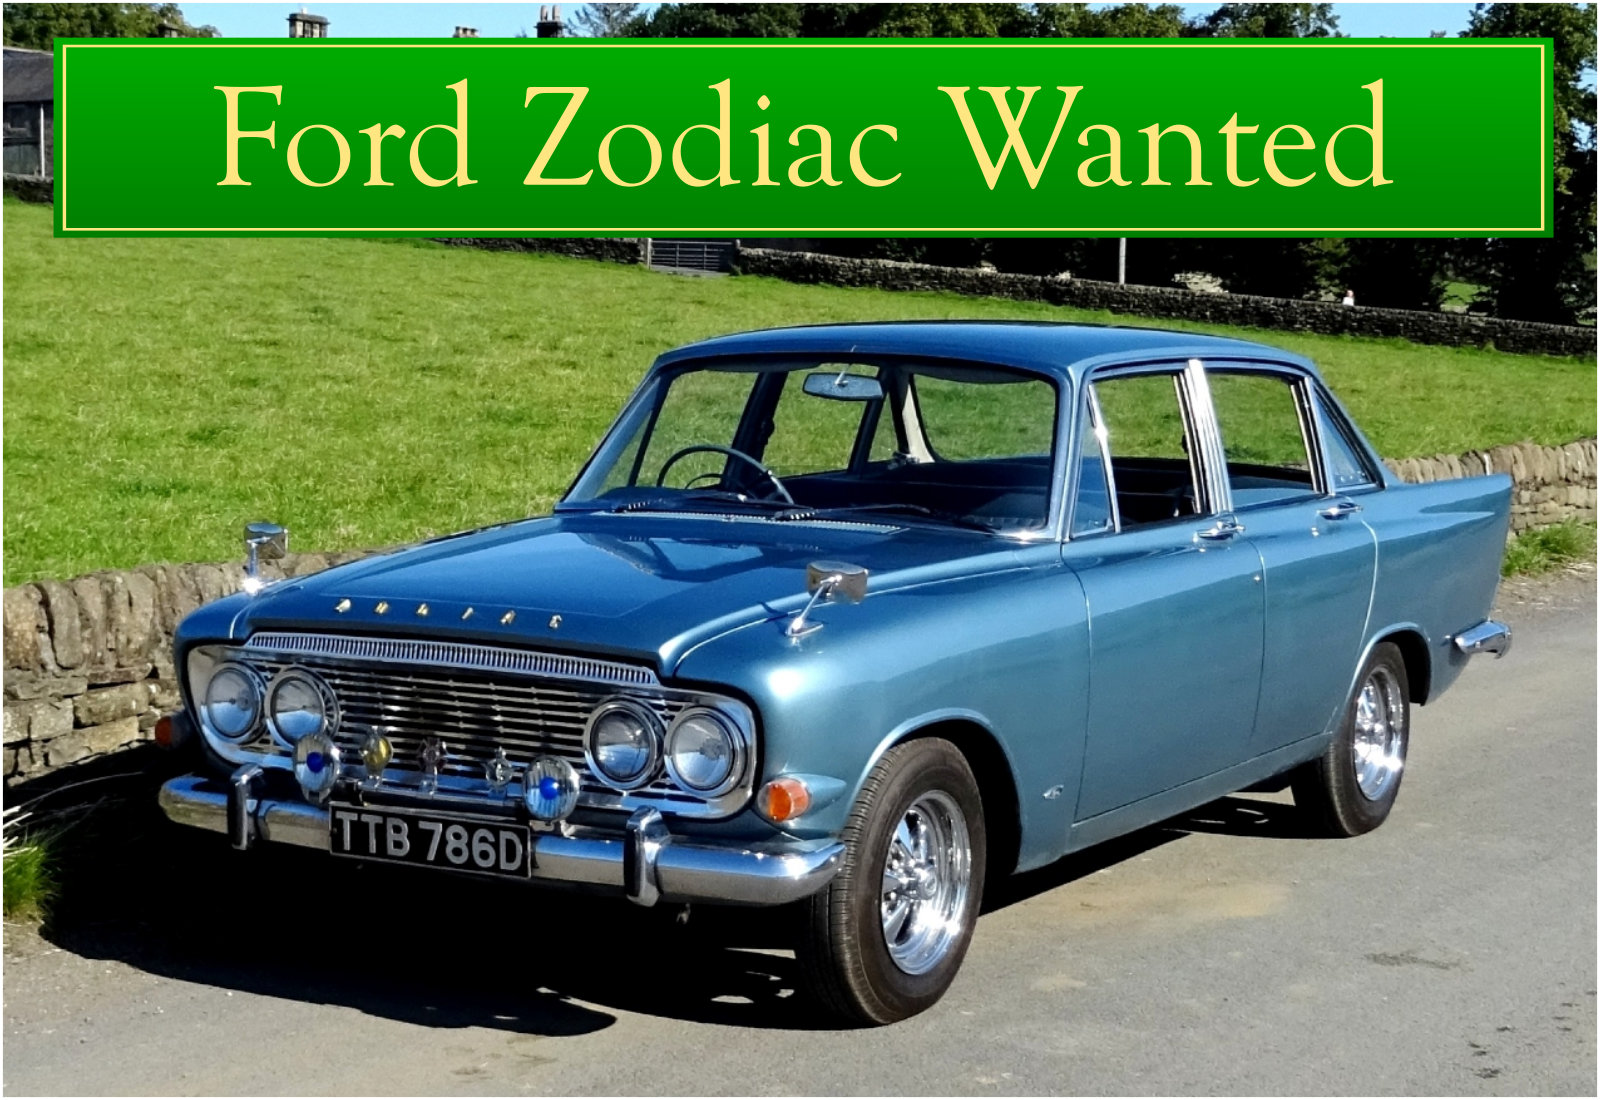 FORD ZODIAC MK2 WANTED, CLASSIC CARS WANTED, INSTANT PAYMENT Wanted (picture 2 of 6)